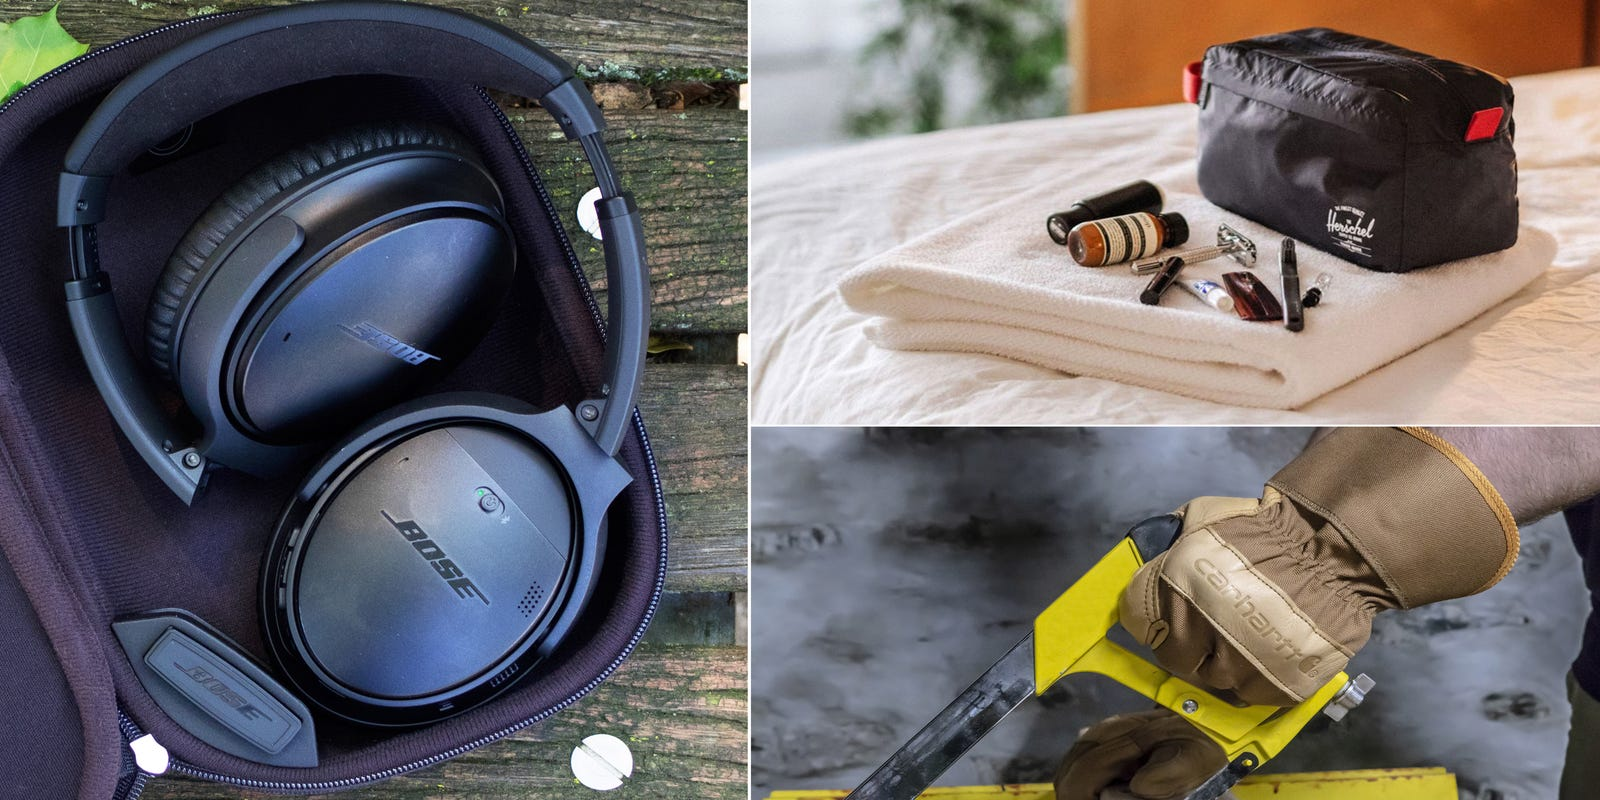 71ac7def64e The best gifts for dad of 2018  20 awesome gifts fathers will actually use